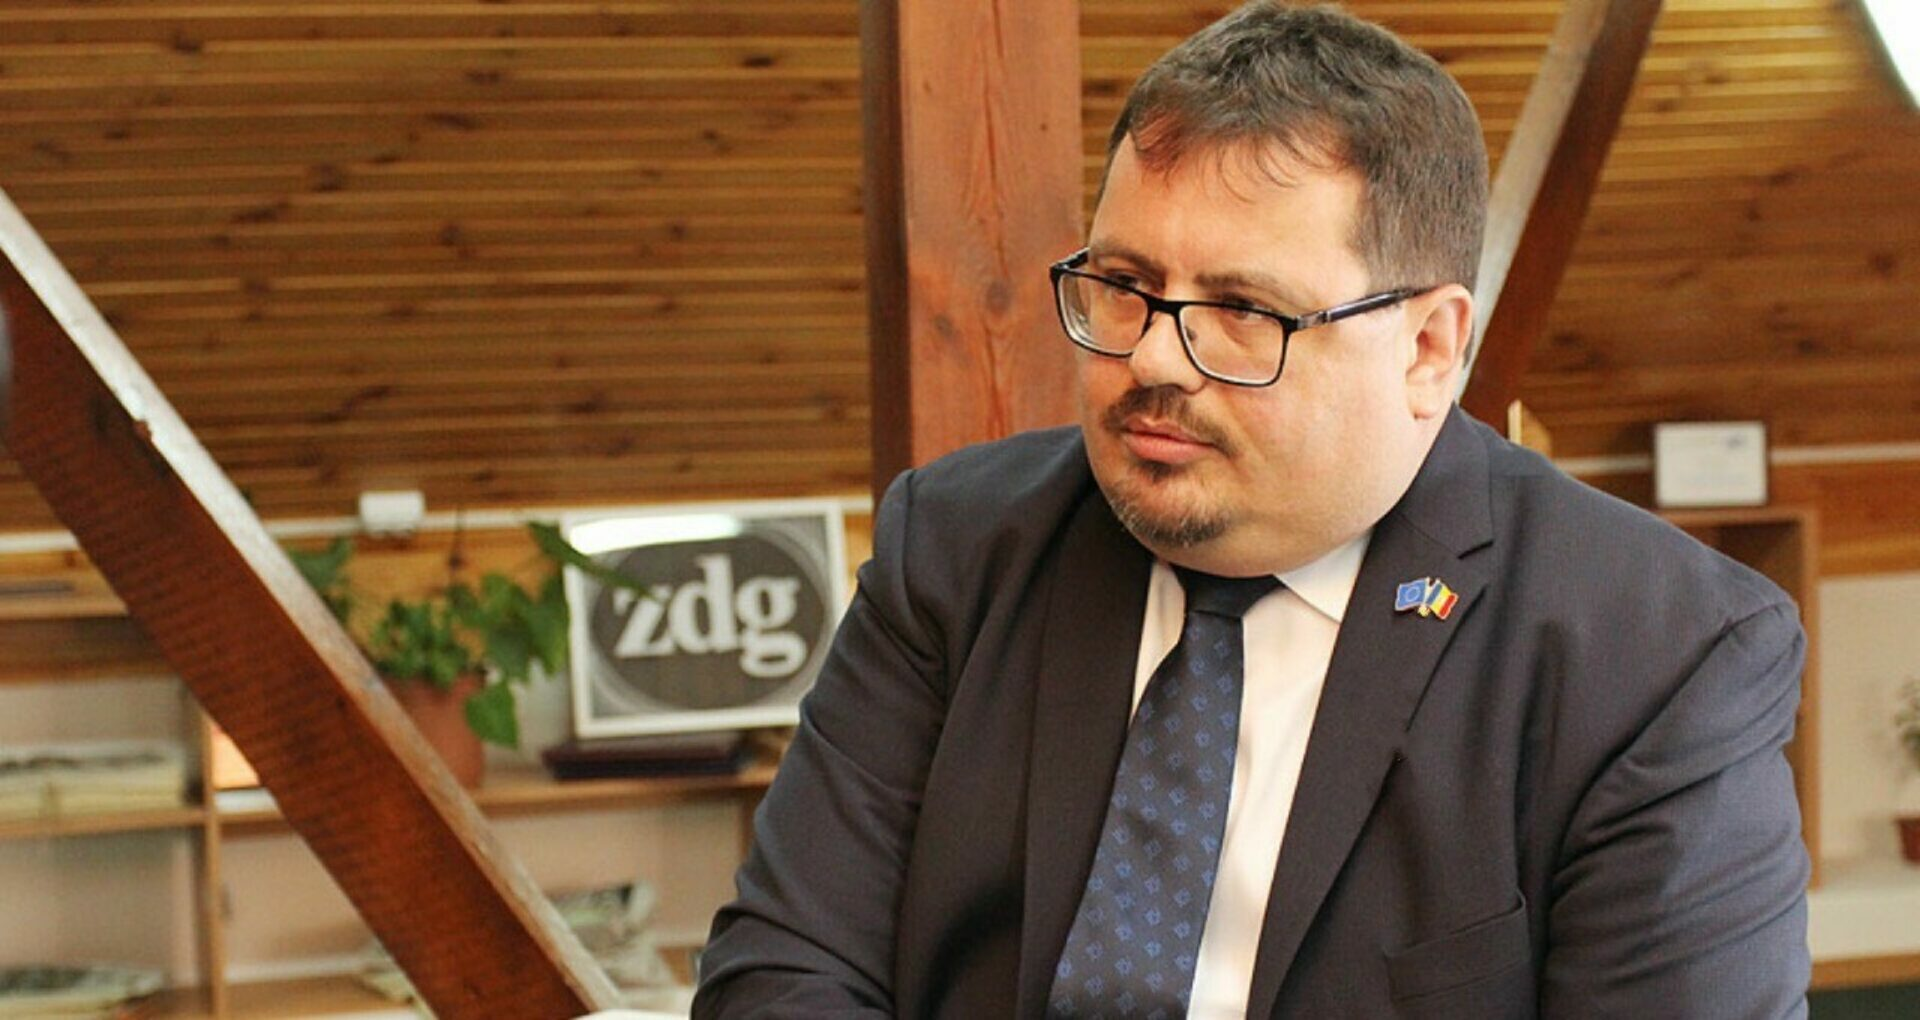 """Don't Be Afraid And Don't Steal""- Interview With Peter Michalko, Head of the EU Delegation to Moldova"